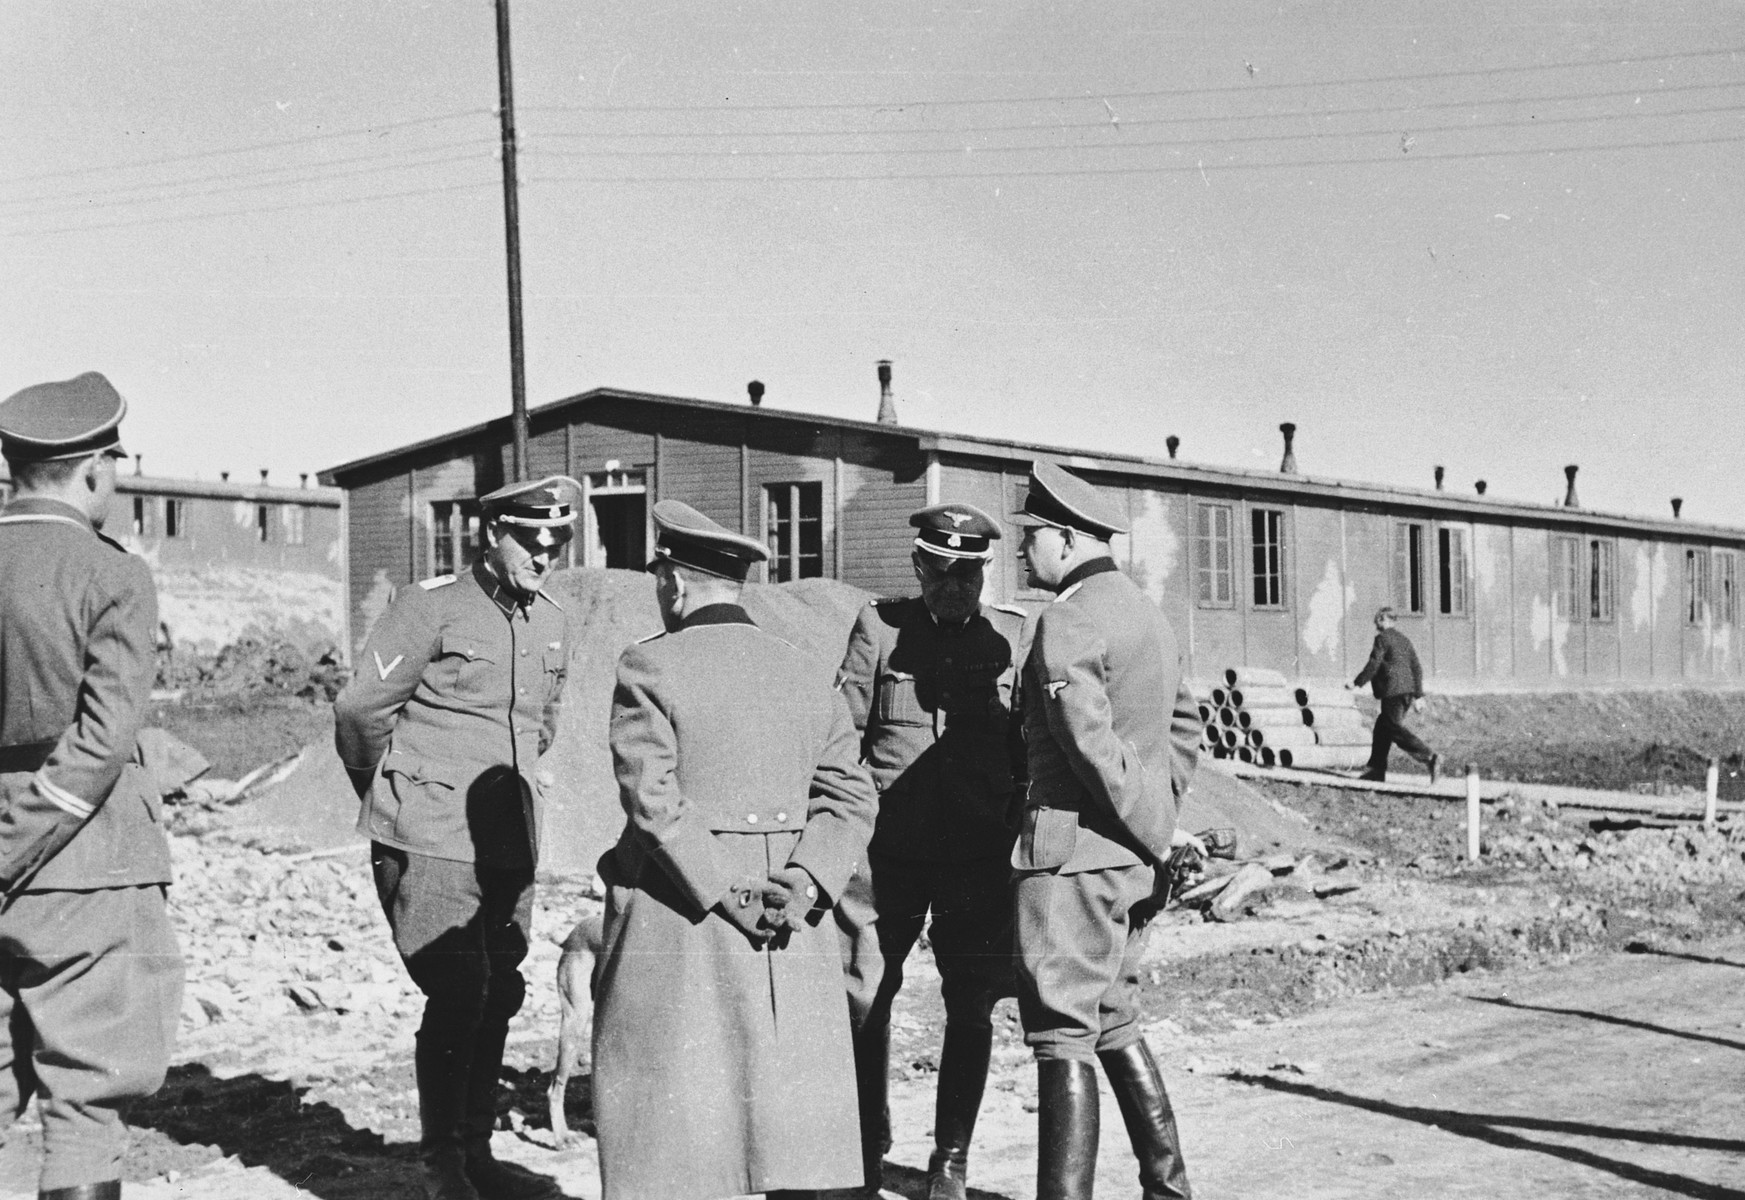 A group of SS officers converse outside at a construction site in the Hinzert concentration camp.